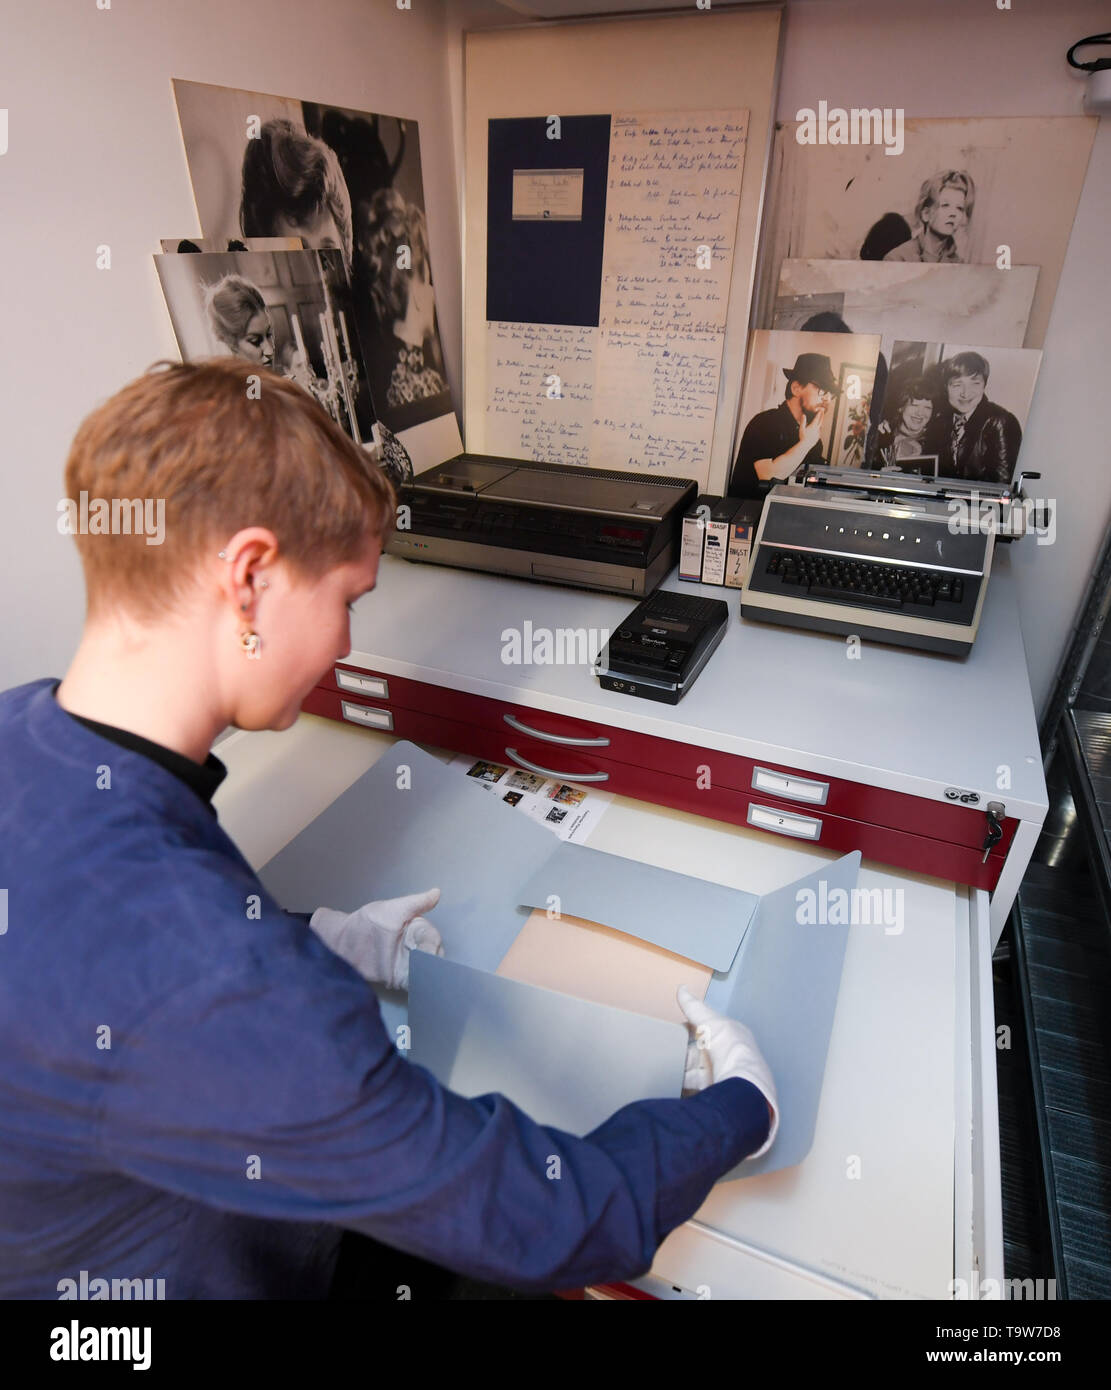 20 May 2019, Hessen, Frankfurt/Main: Susanne Mohr, a student assistant, is standing in the written records and photo archive of the new Fassbinder Center of the DFF - Deutsches Filminstitut und Filmmuseum - in front of a poster cabinet on which a video recorder, a cassette recorder and a typewriter are placed. The late director Rainer Werner Fassbinder had a decisive influence on German film. Much of his estate is now accessible. It includes scripts, financing plans, shooting plans, contracts, production files and correspondence. Photo: Arne Dedert/dpa - Stock Image